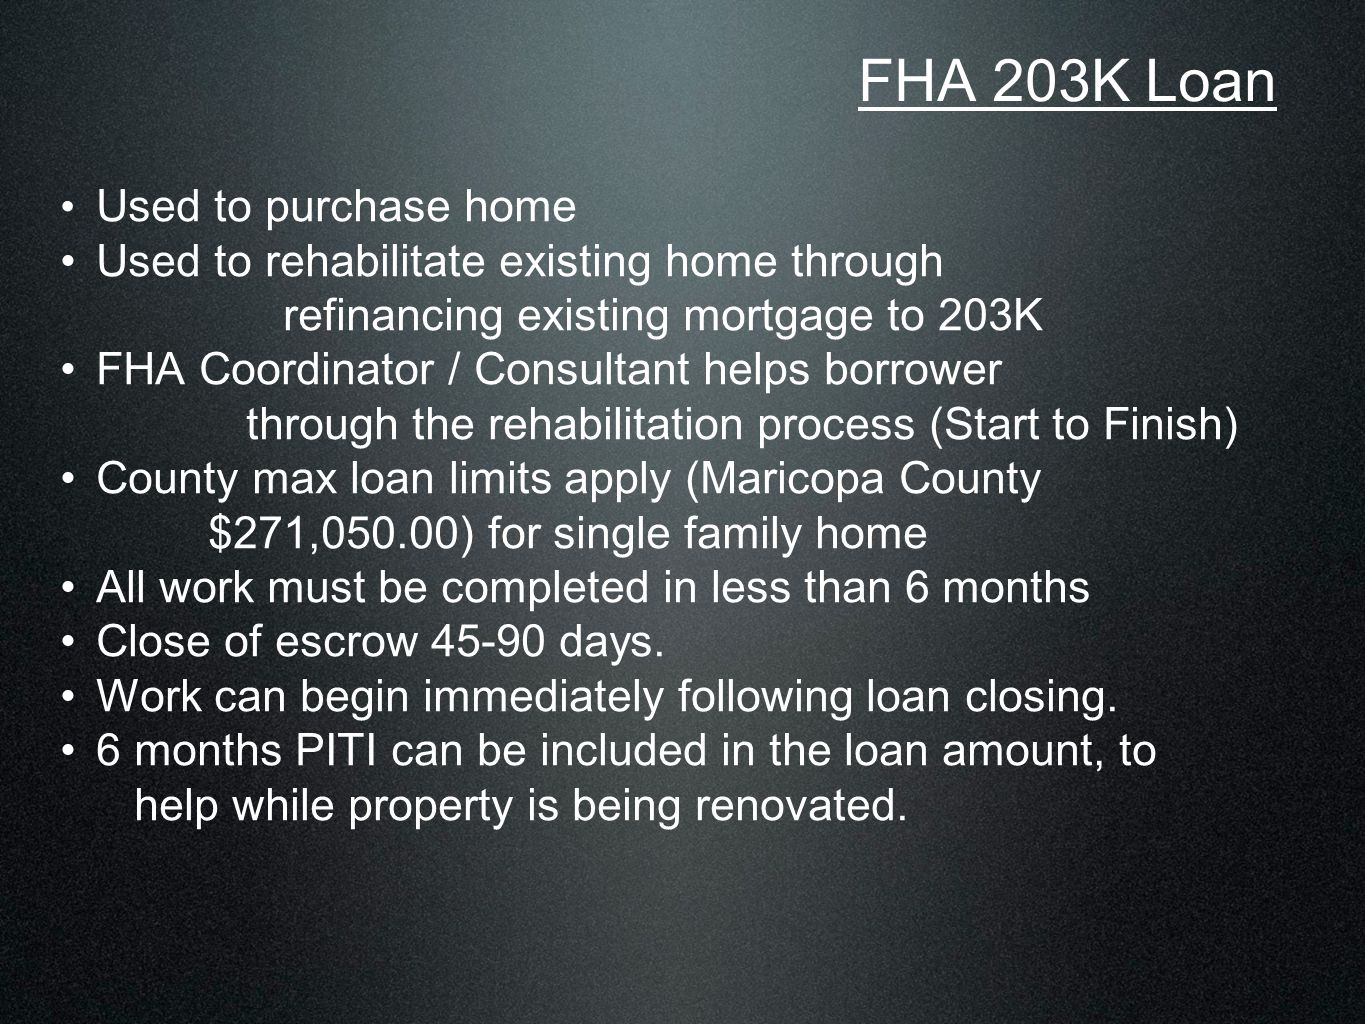 Used to purchase home Used to rehabilitate existing home through refinancing existing mortgage to 203K FHA Coordinator / Consultant helps borrower through the rehabilitation process (Start to Finish) County max loan limits apply (Maricopa County $271,050.00) for single family home All work must be completed in less than 6 months Close of escrow 45-90 days.